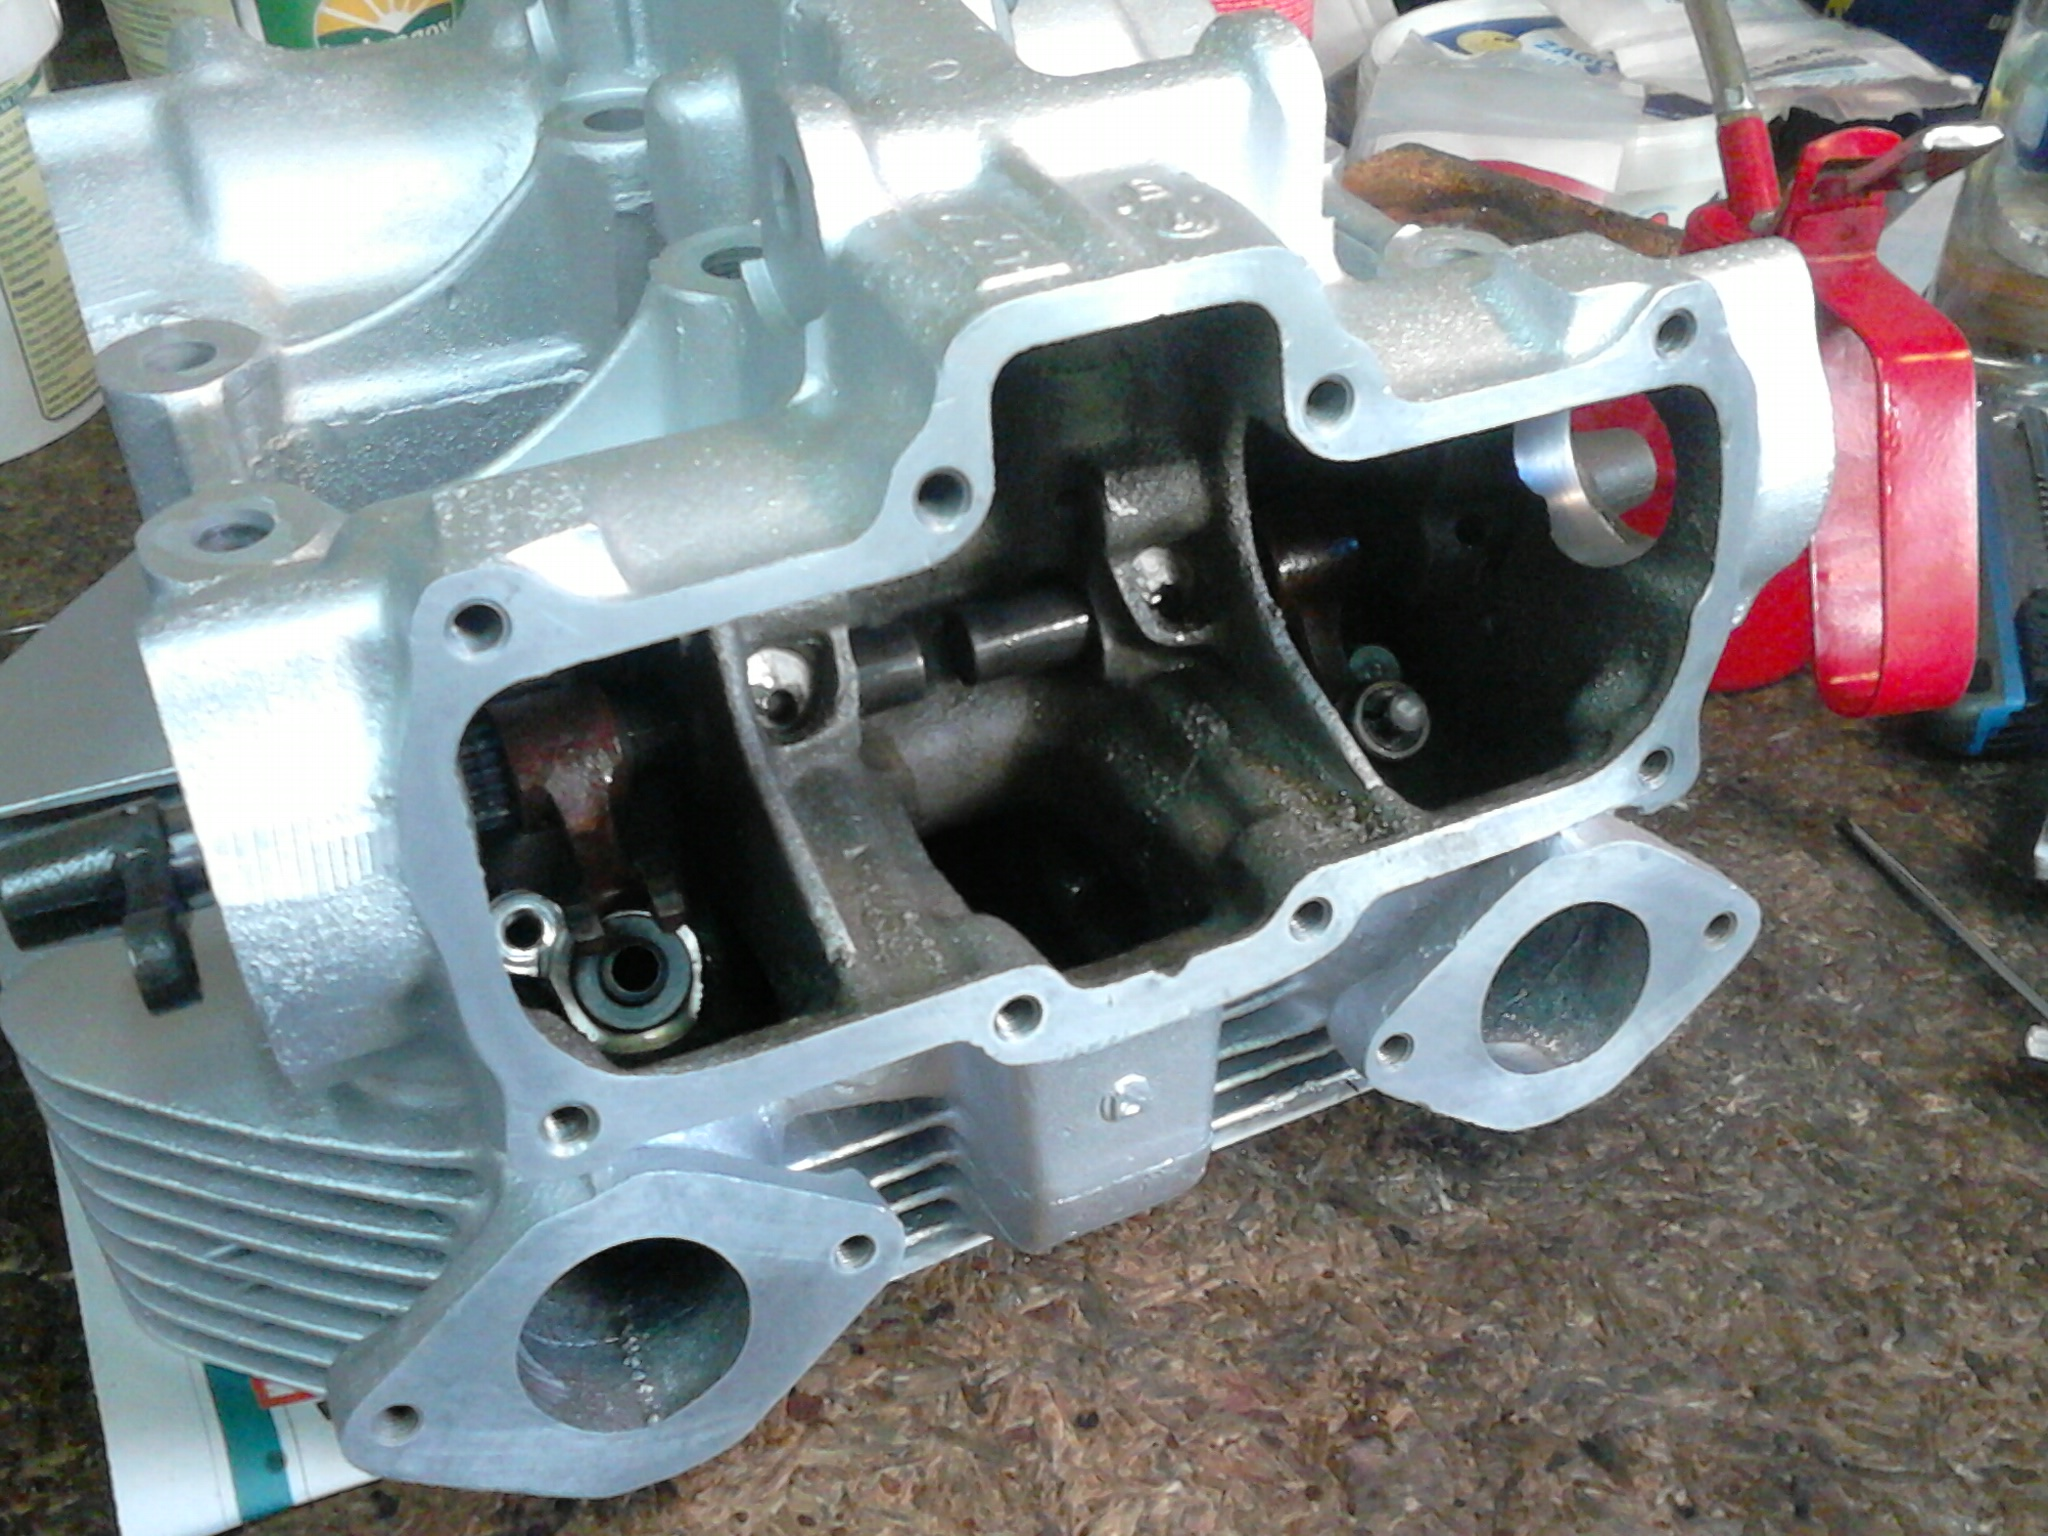 CB500T engine assembly